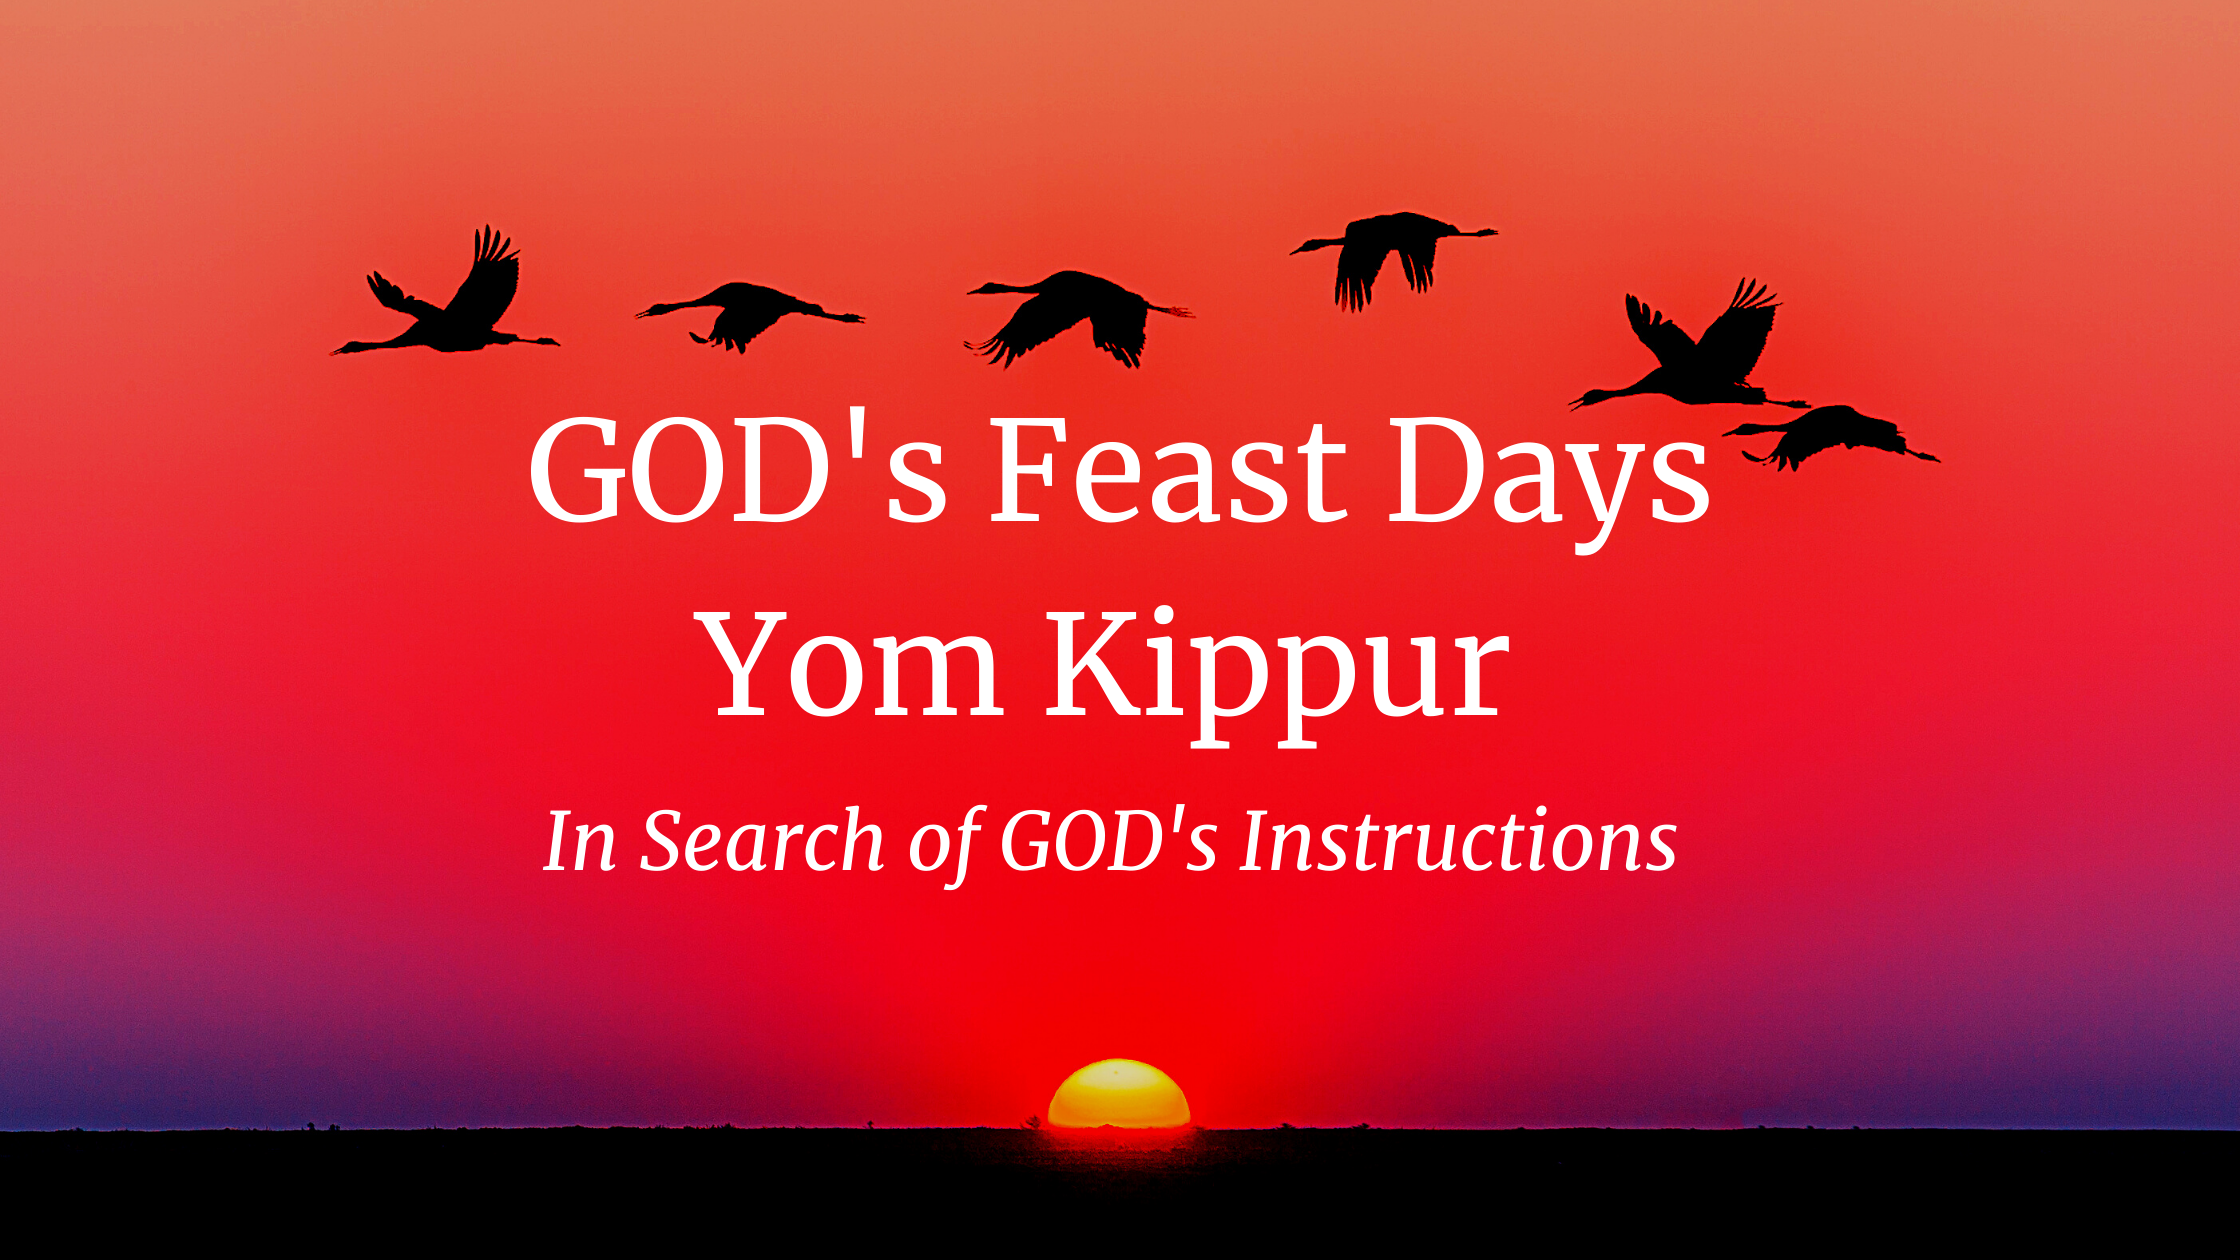 god's-feast-days-yom-kippur-graphic